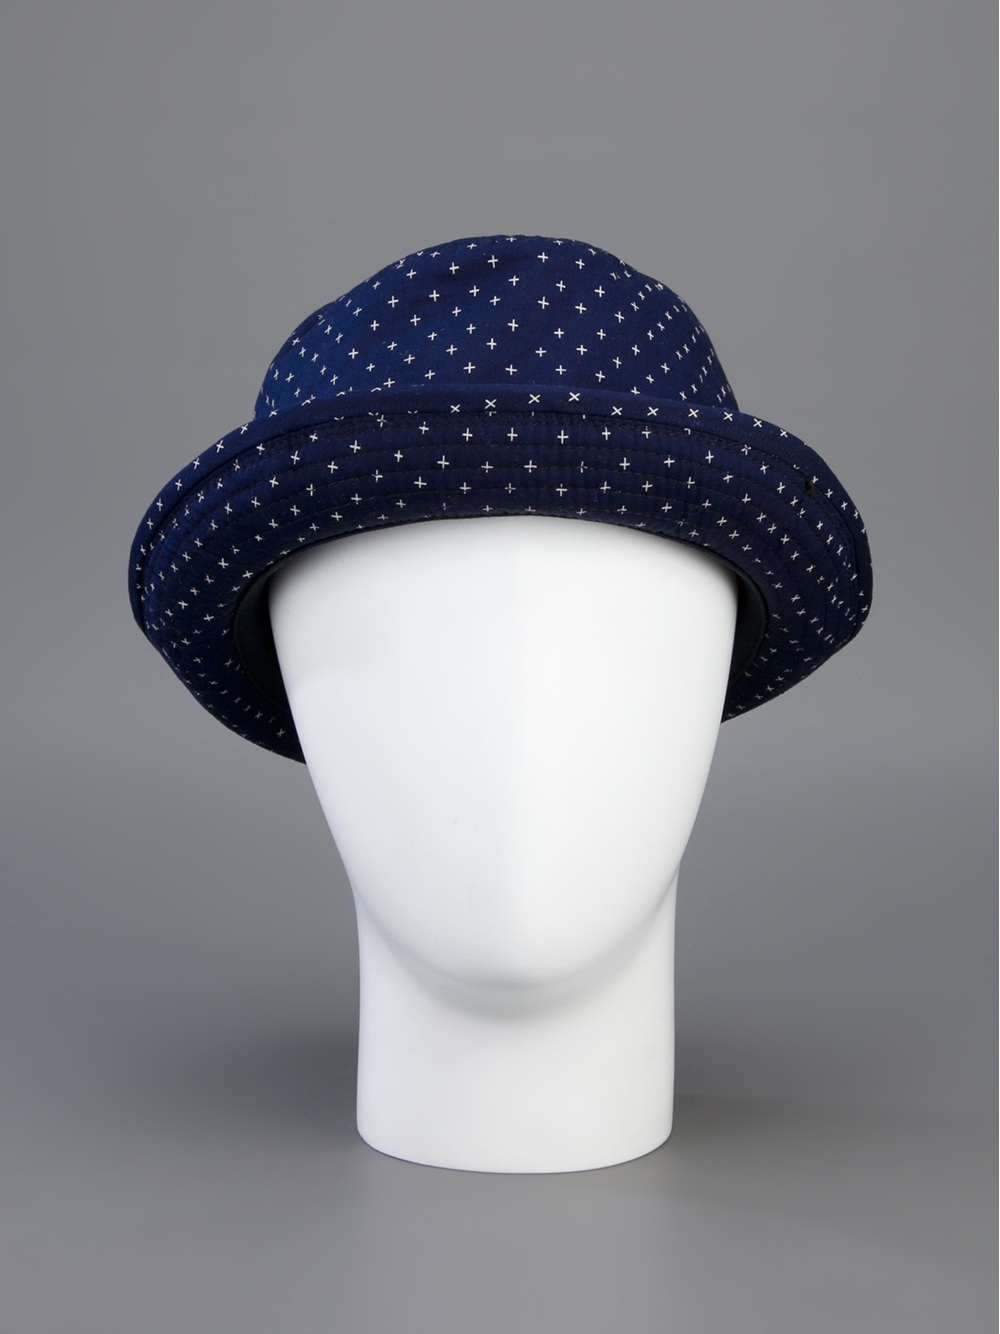 418f5ed8f7774 Lyst - Paul Smith Trilby Hat in Blue for Men